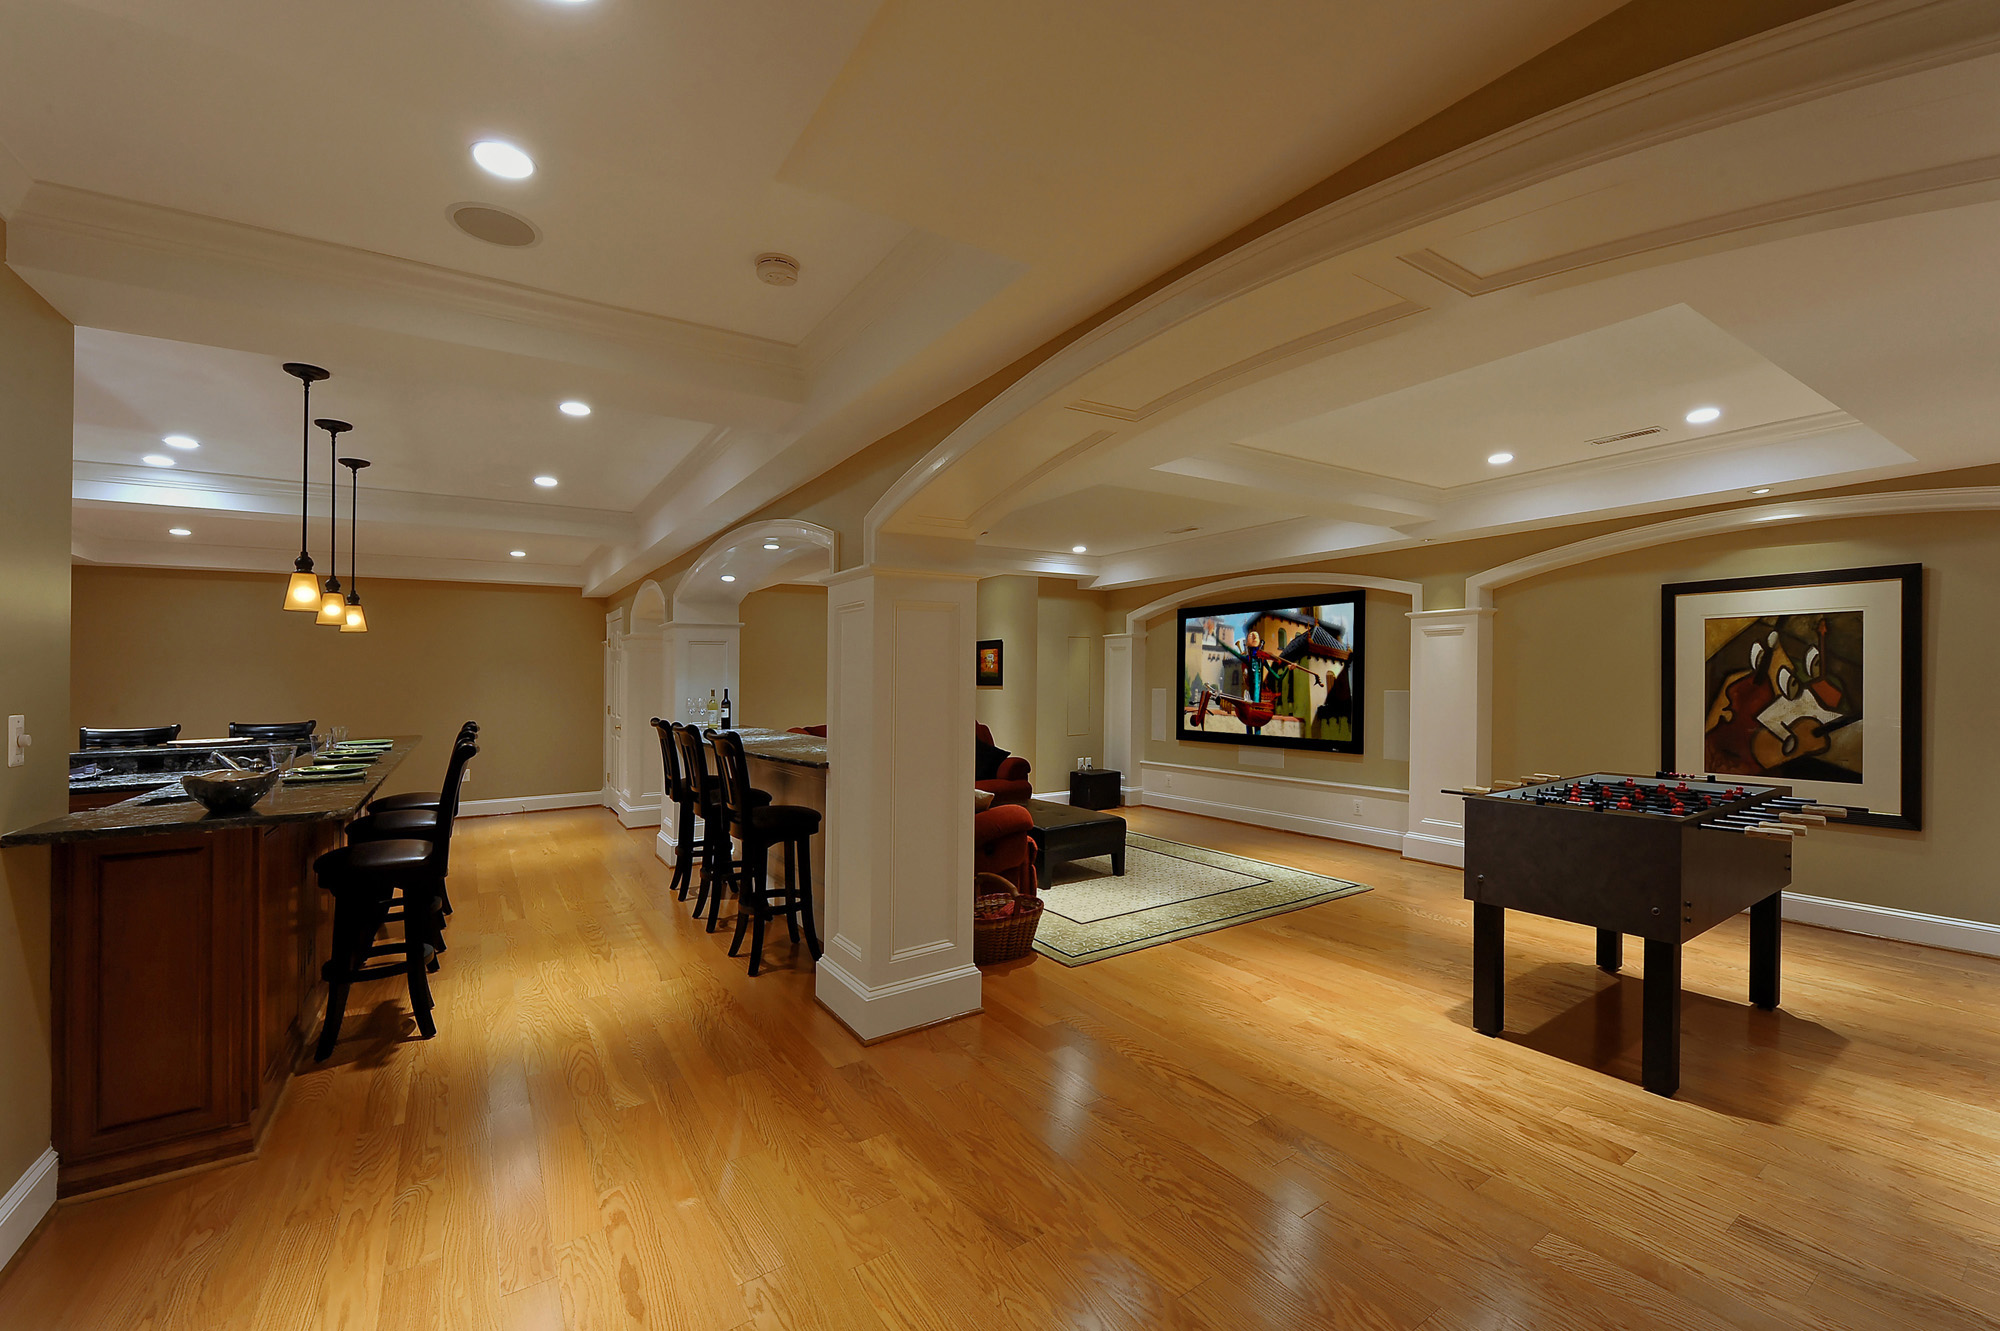 Lower level renovation creates wonderful spaces for ashburn virginia family bowa - Basement renovation ...